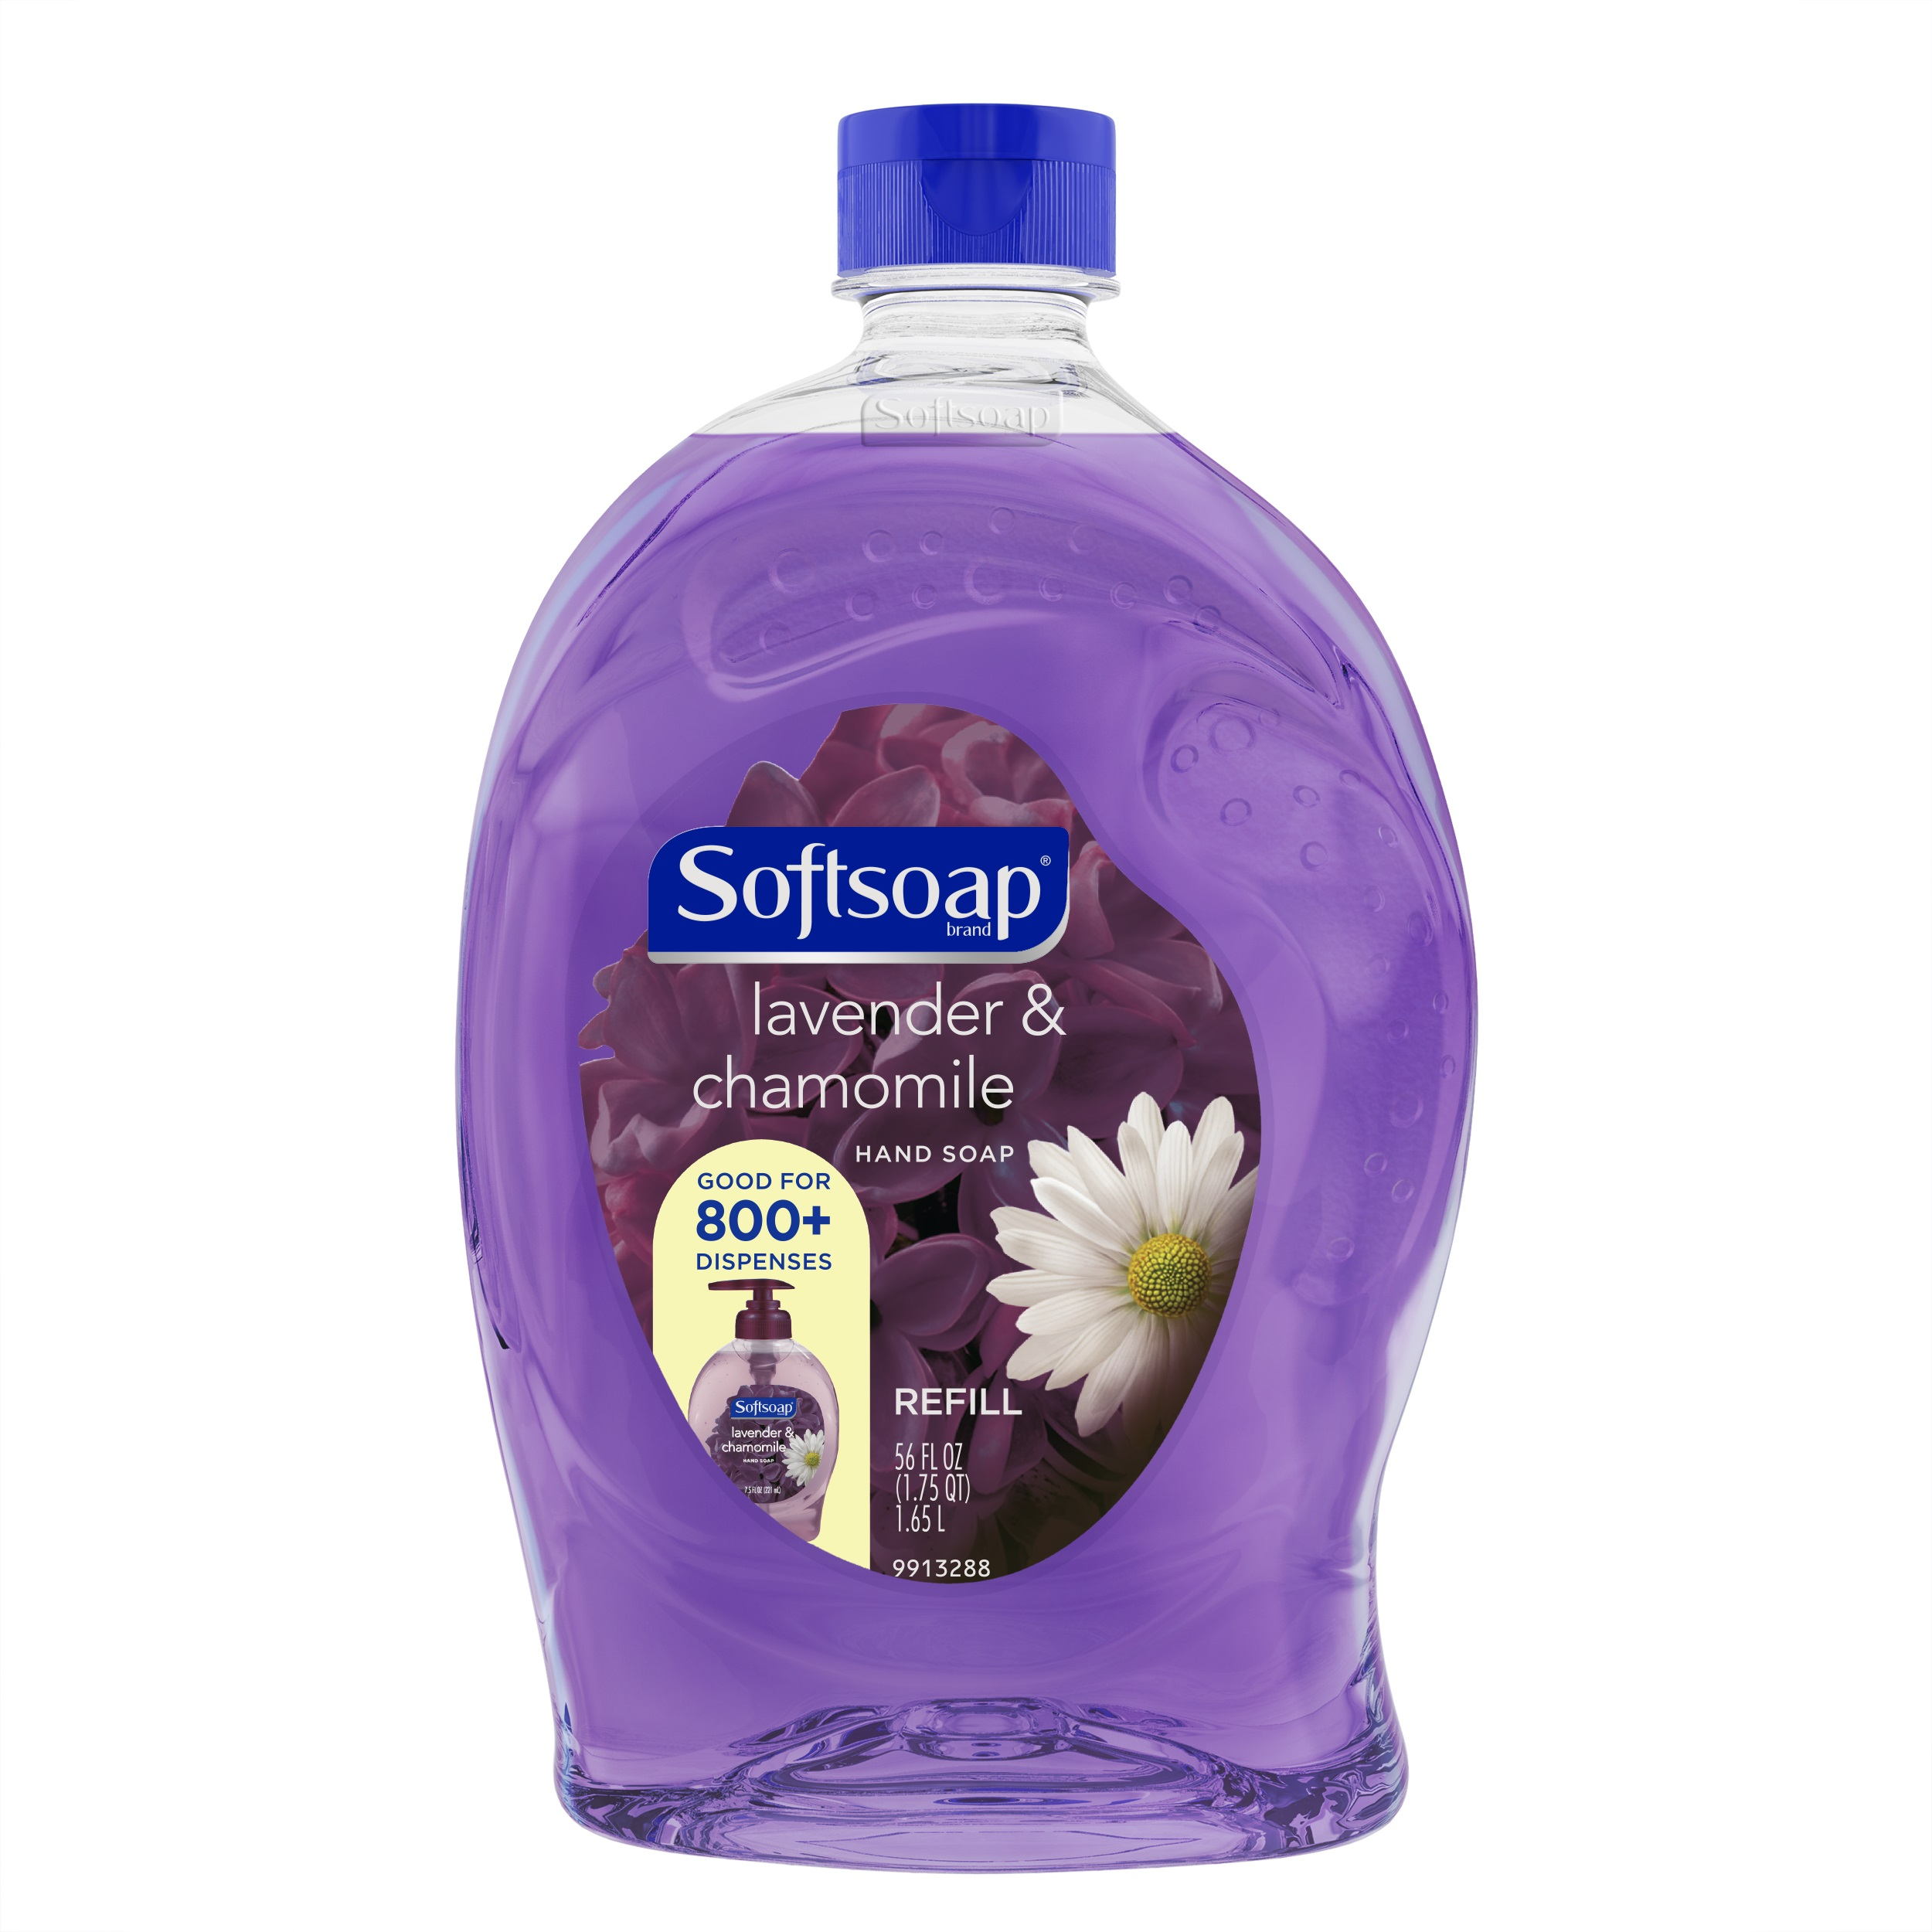 (2 pack) Softsoap Liquid Hand Soap Refill, Lavender and Chamomile - 56 fl oz